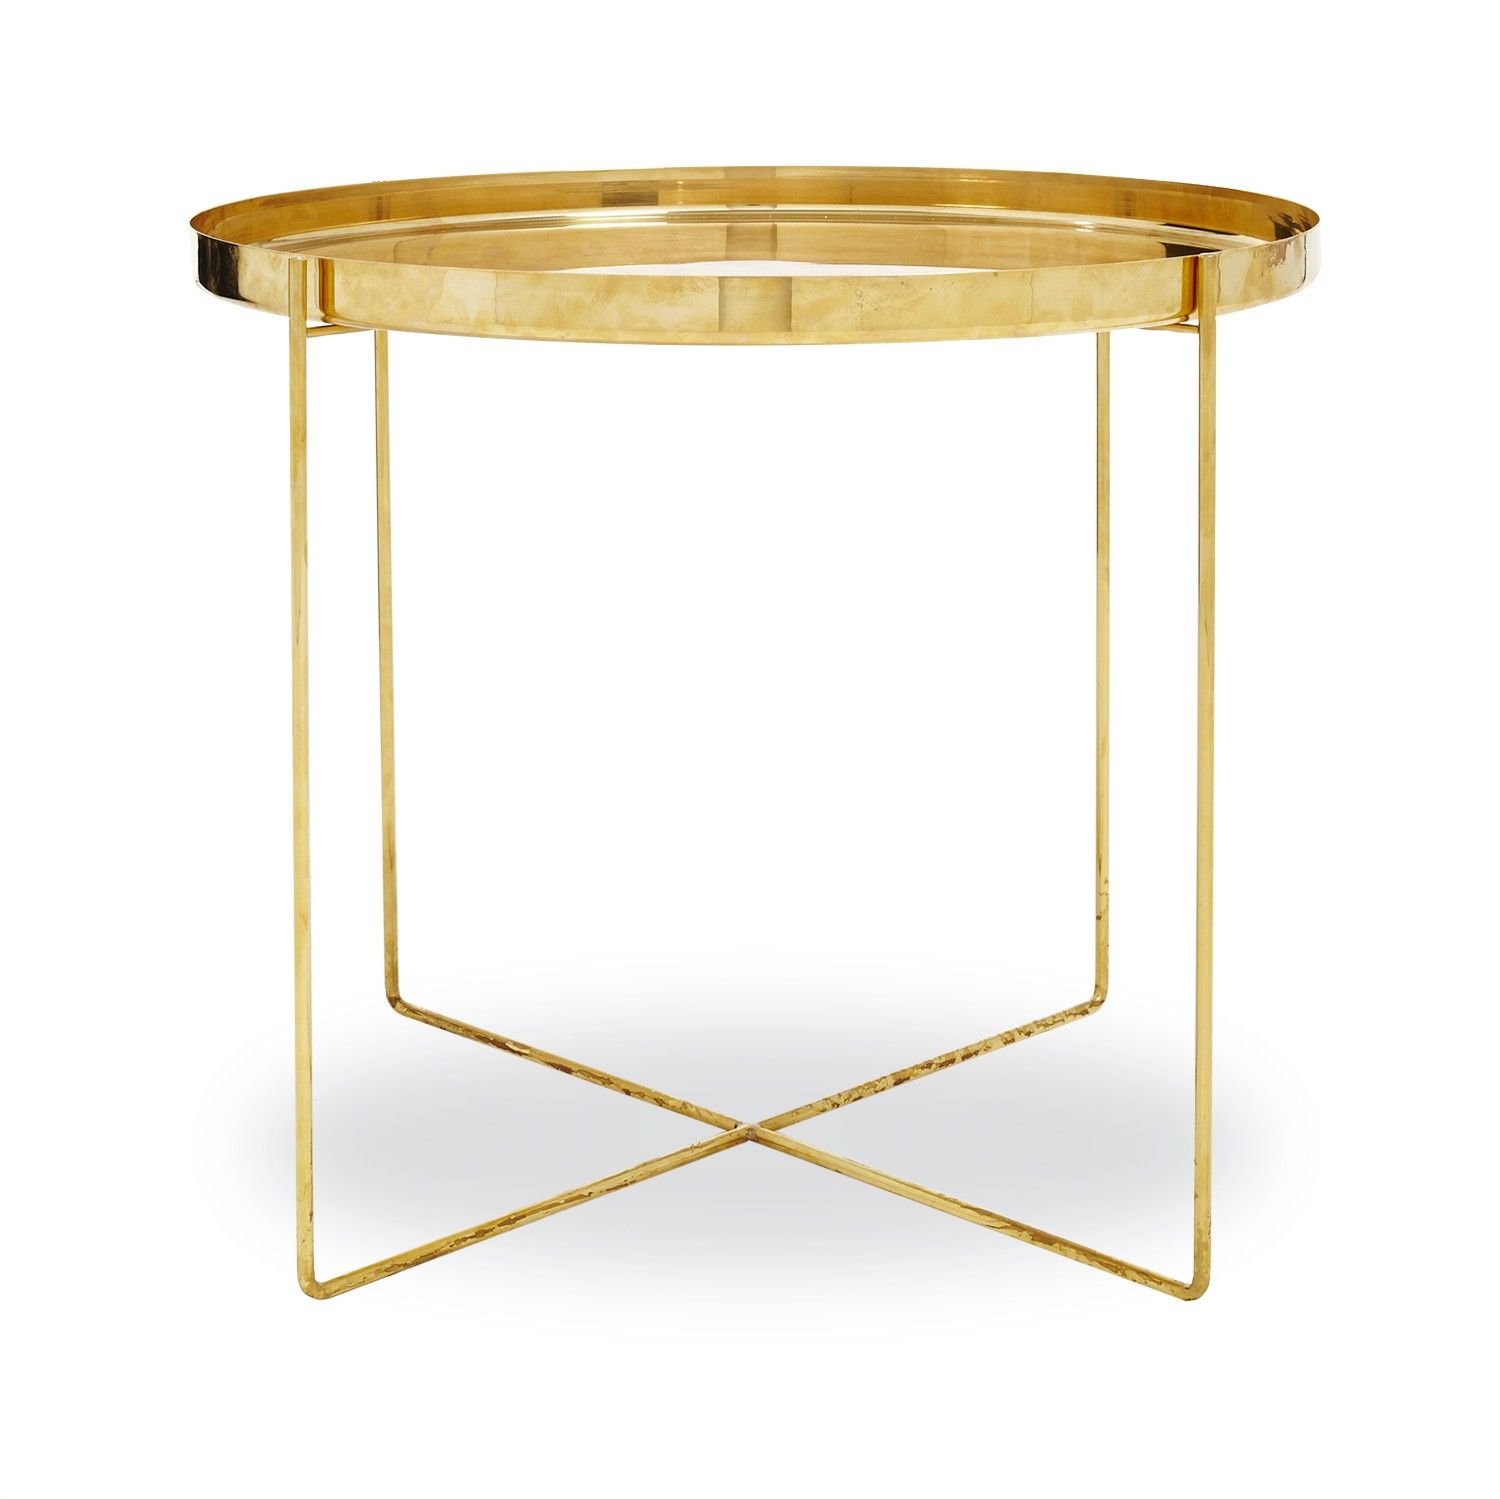 Simple yet strikingly sculptural the Ornate side table is